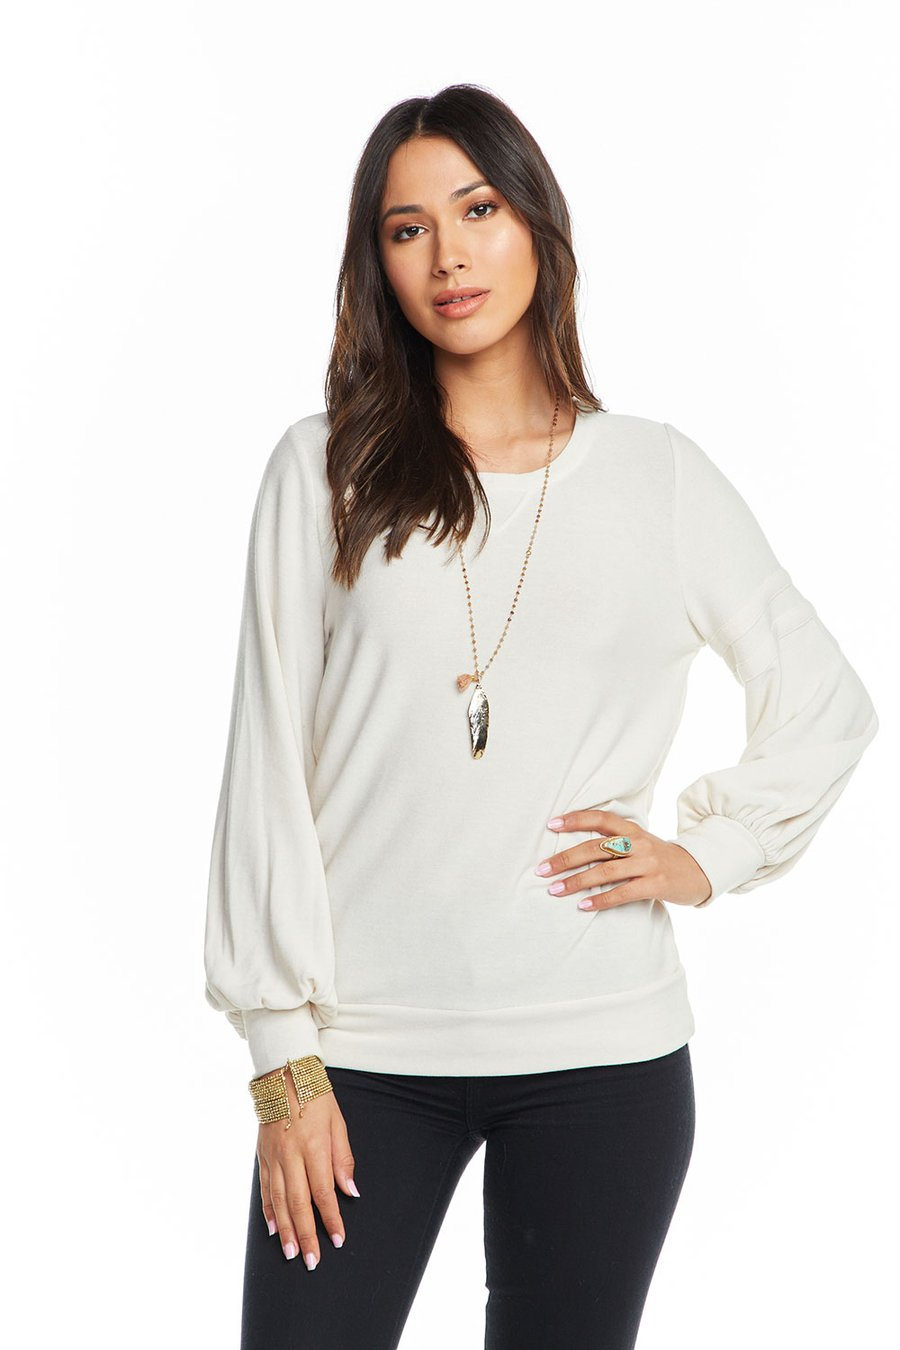 Chaser Cozy Knit Bishop Sleeve Wide Neck Pullover w/Strappings - Cake (creamy ivory) - Ella J Boutique